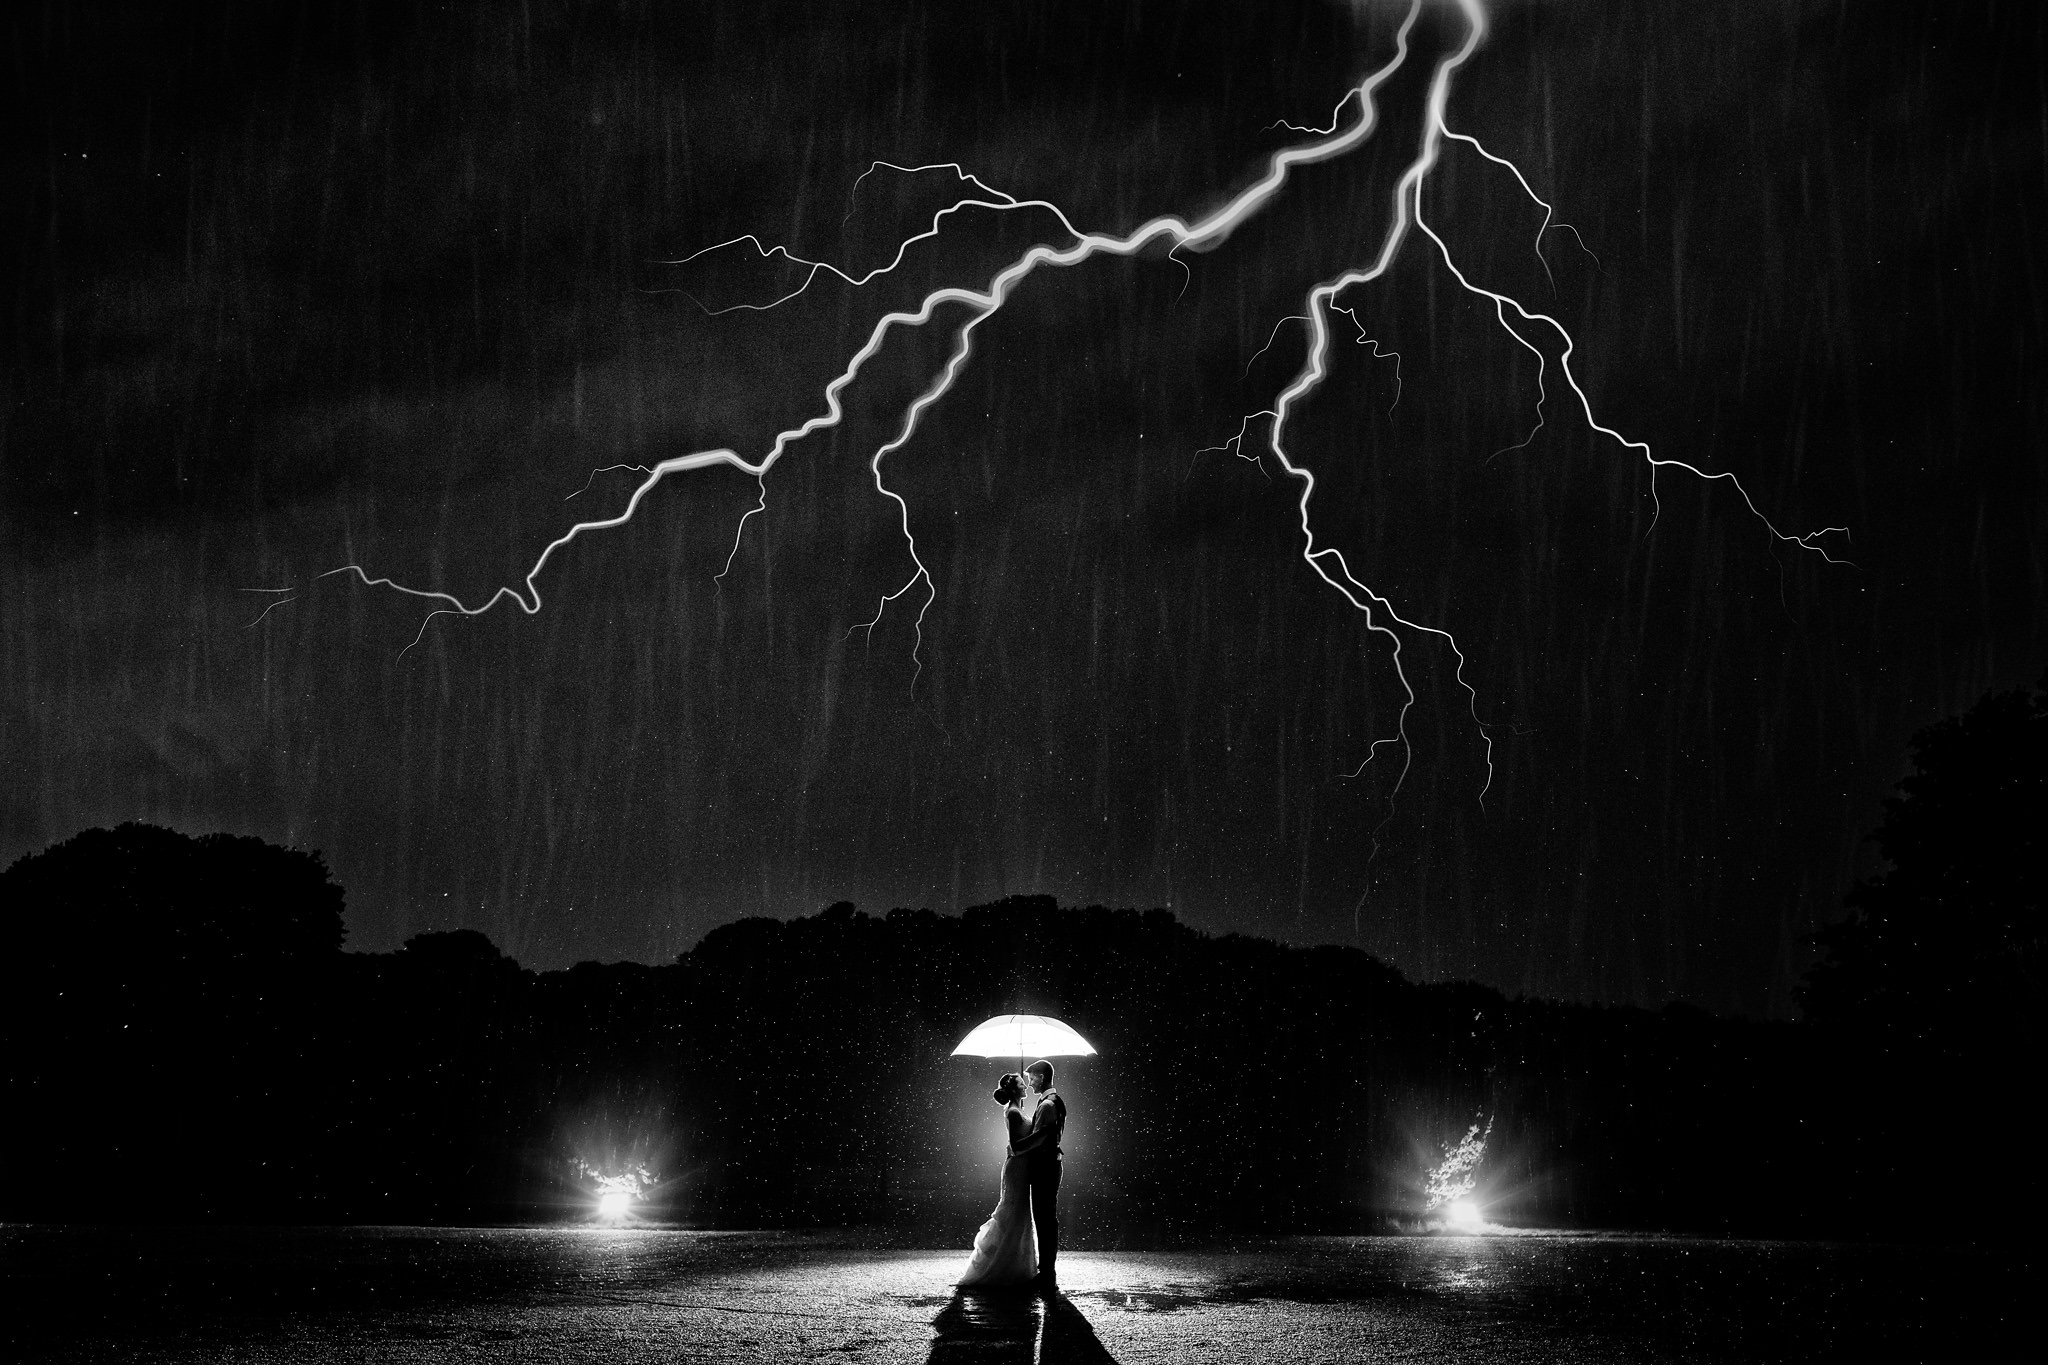 Couple under umbrella in lighting storm - photo by Rich Howman